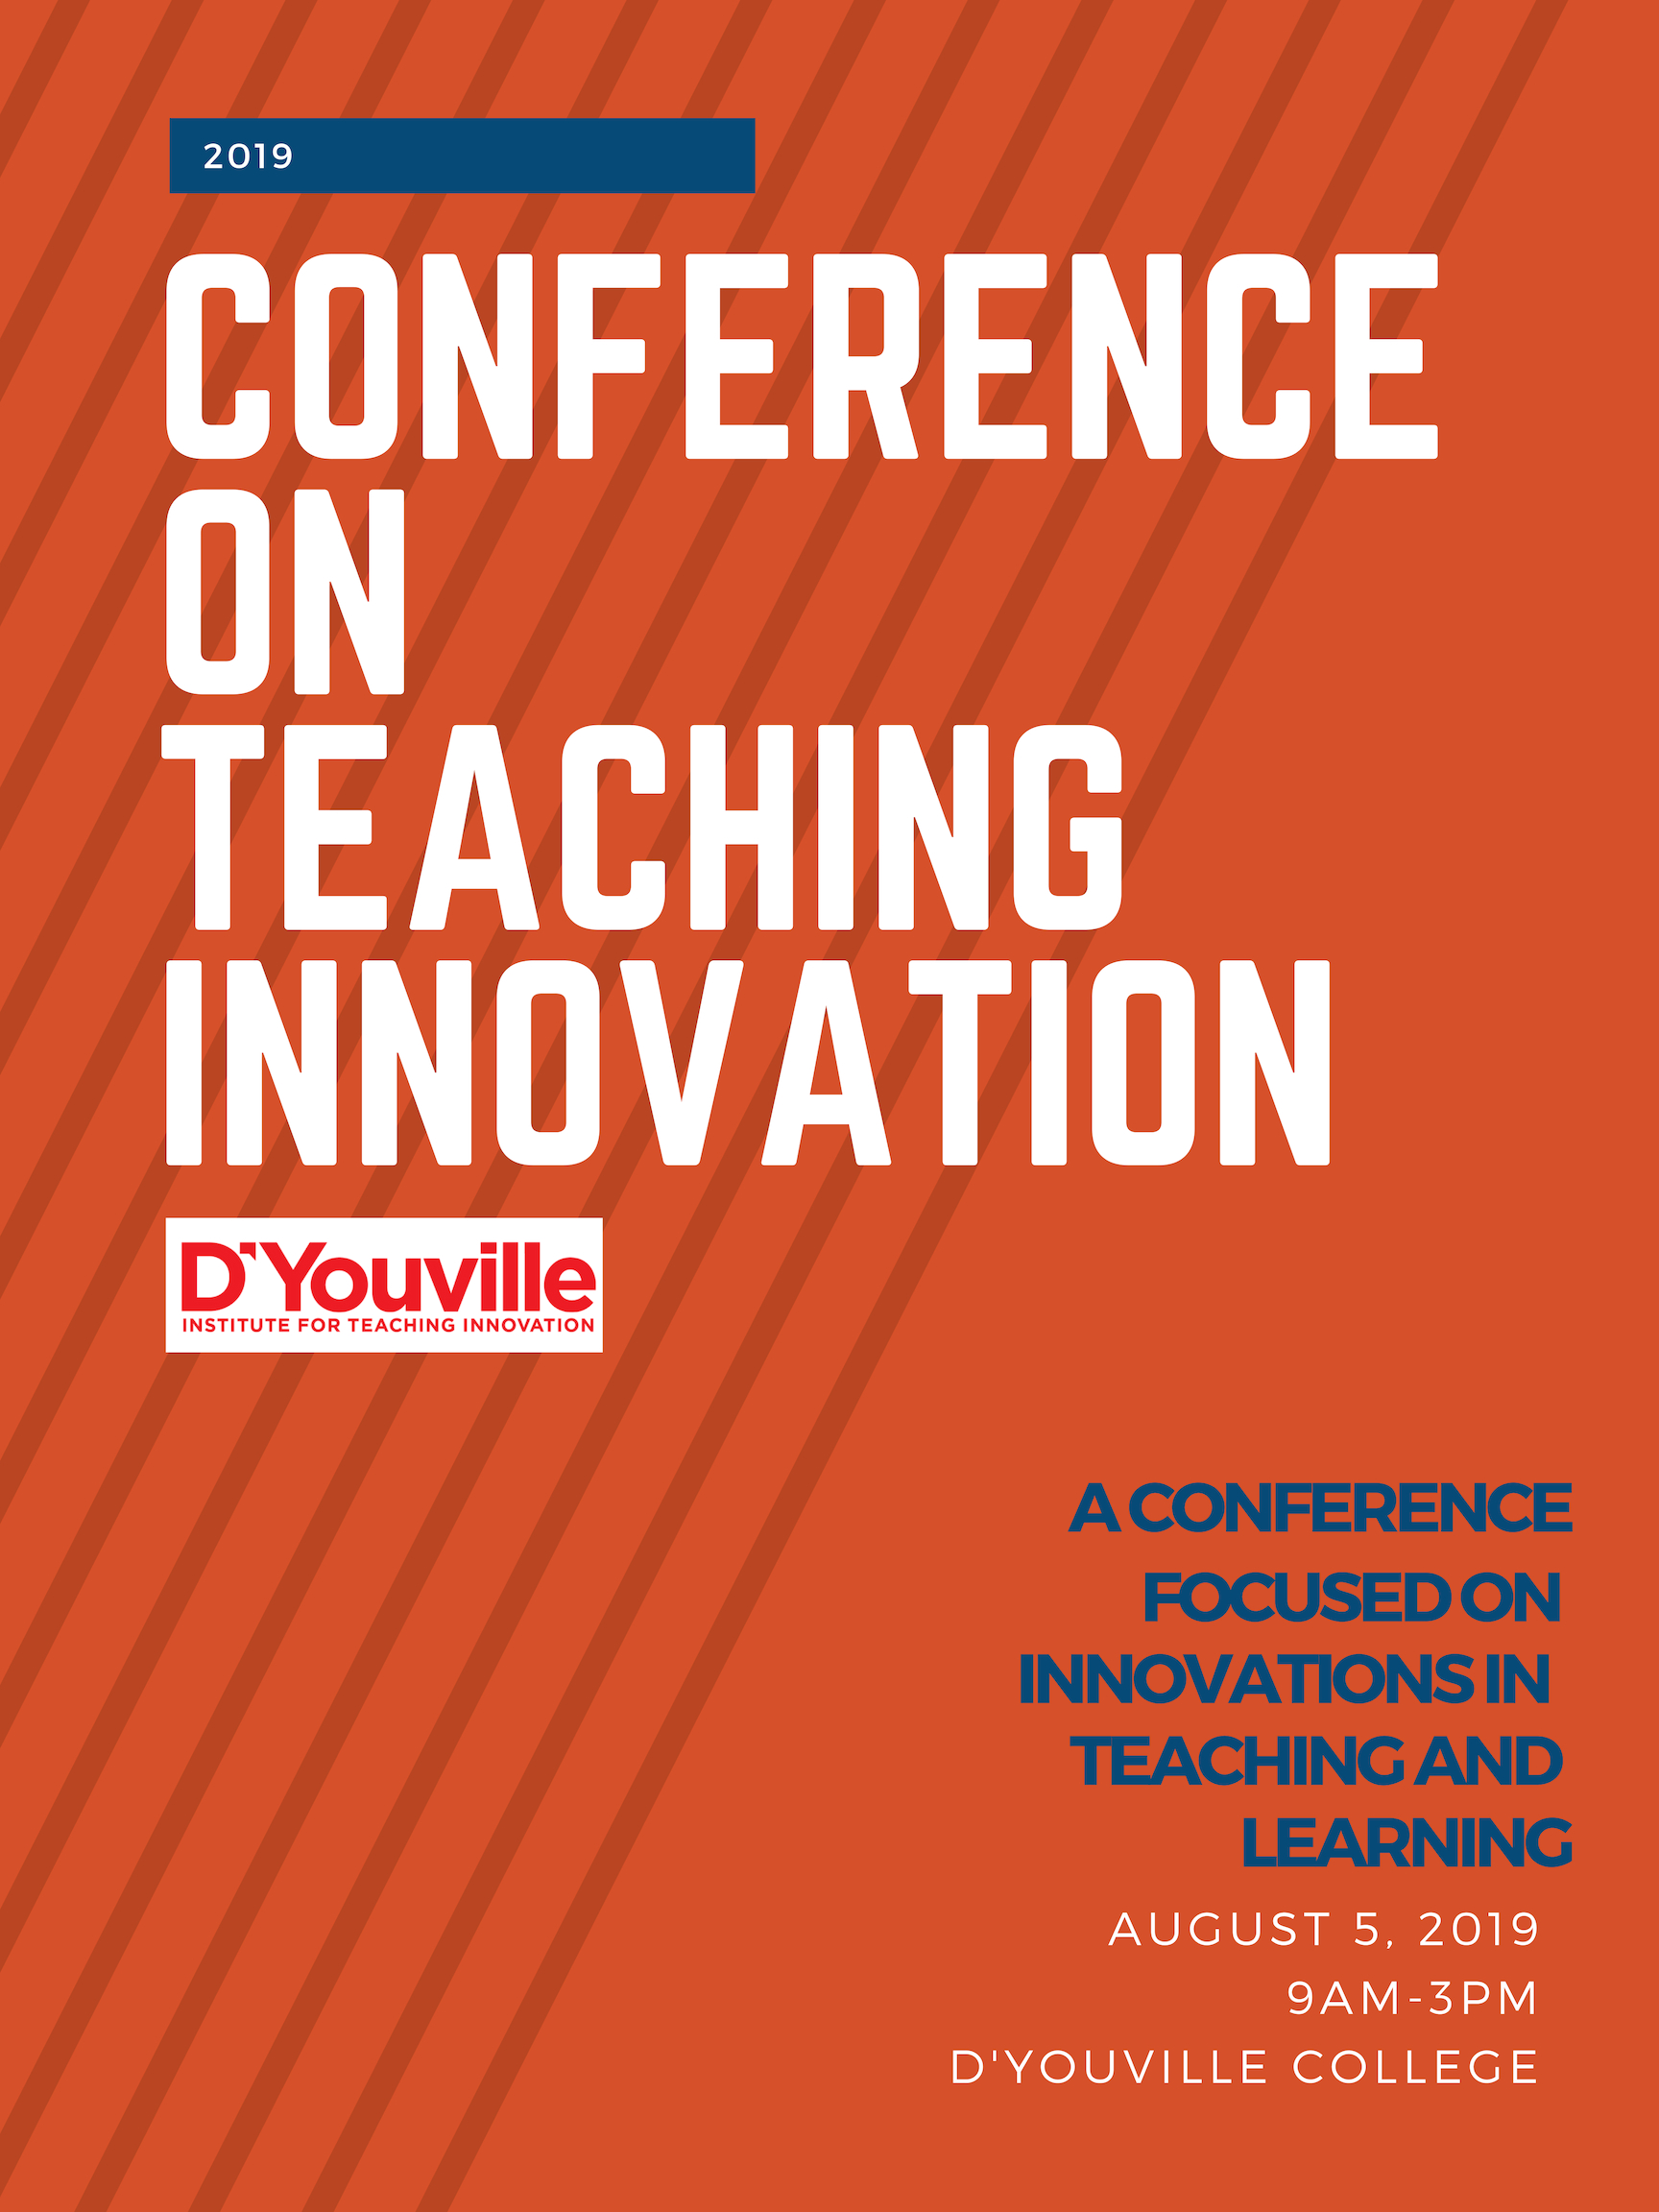 Calendar | Iti | Institute For Teaching Innovation At D'youville D'youville Calendar 2019